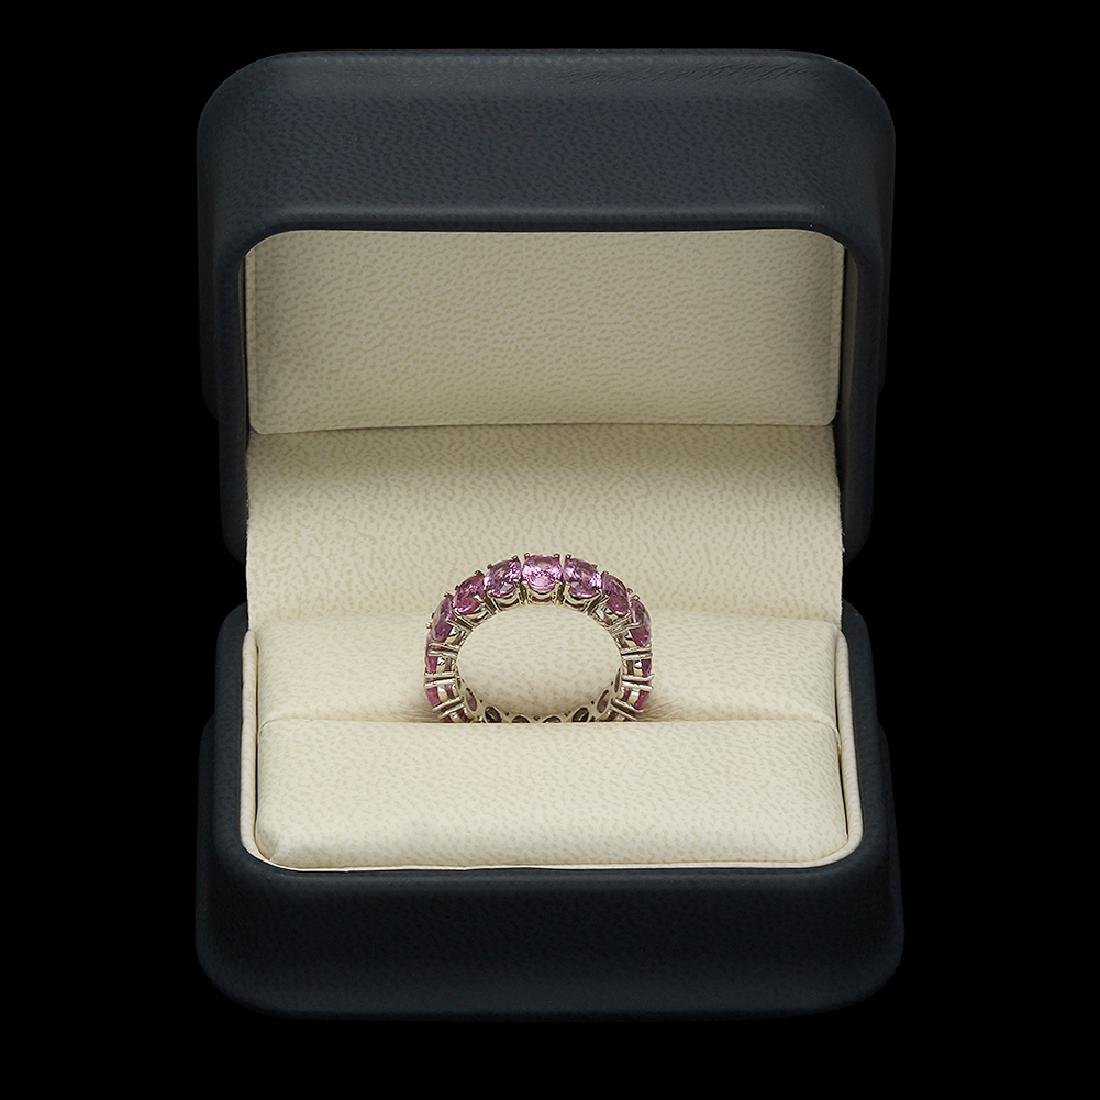 14K Gold 10.25ct Pink Sapphire Ring - 3